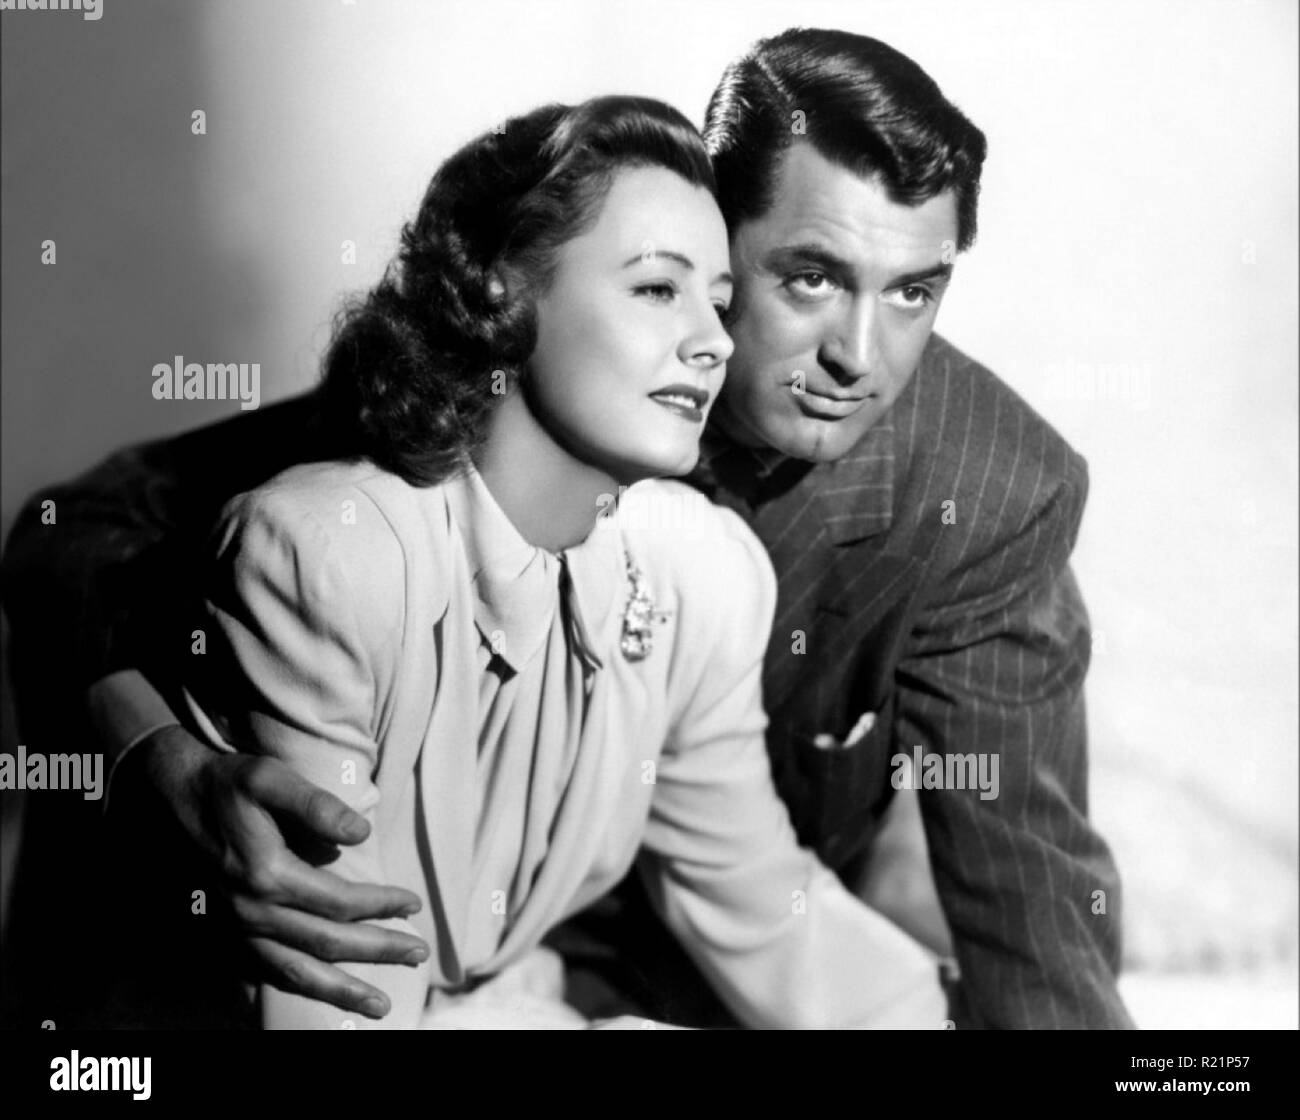 1941 film melodrama starring Irene Dunne, Cary Grant, Beulah Bondi, and Edgar Buchanan. The picture was directed by George Stevens, written by Martha Cheavens and Morrie Ryskind, and depicts the story of a loving couple who must overcome adversity to keep their marriage and raise a child. Grant was nominated for the Academy Award for Best Actor for his performance. Credit: Hollywood Photo Archive / MediaPunch - Stock Image